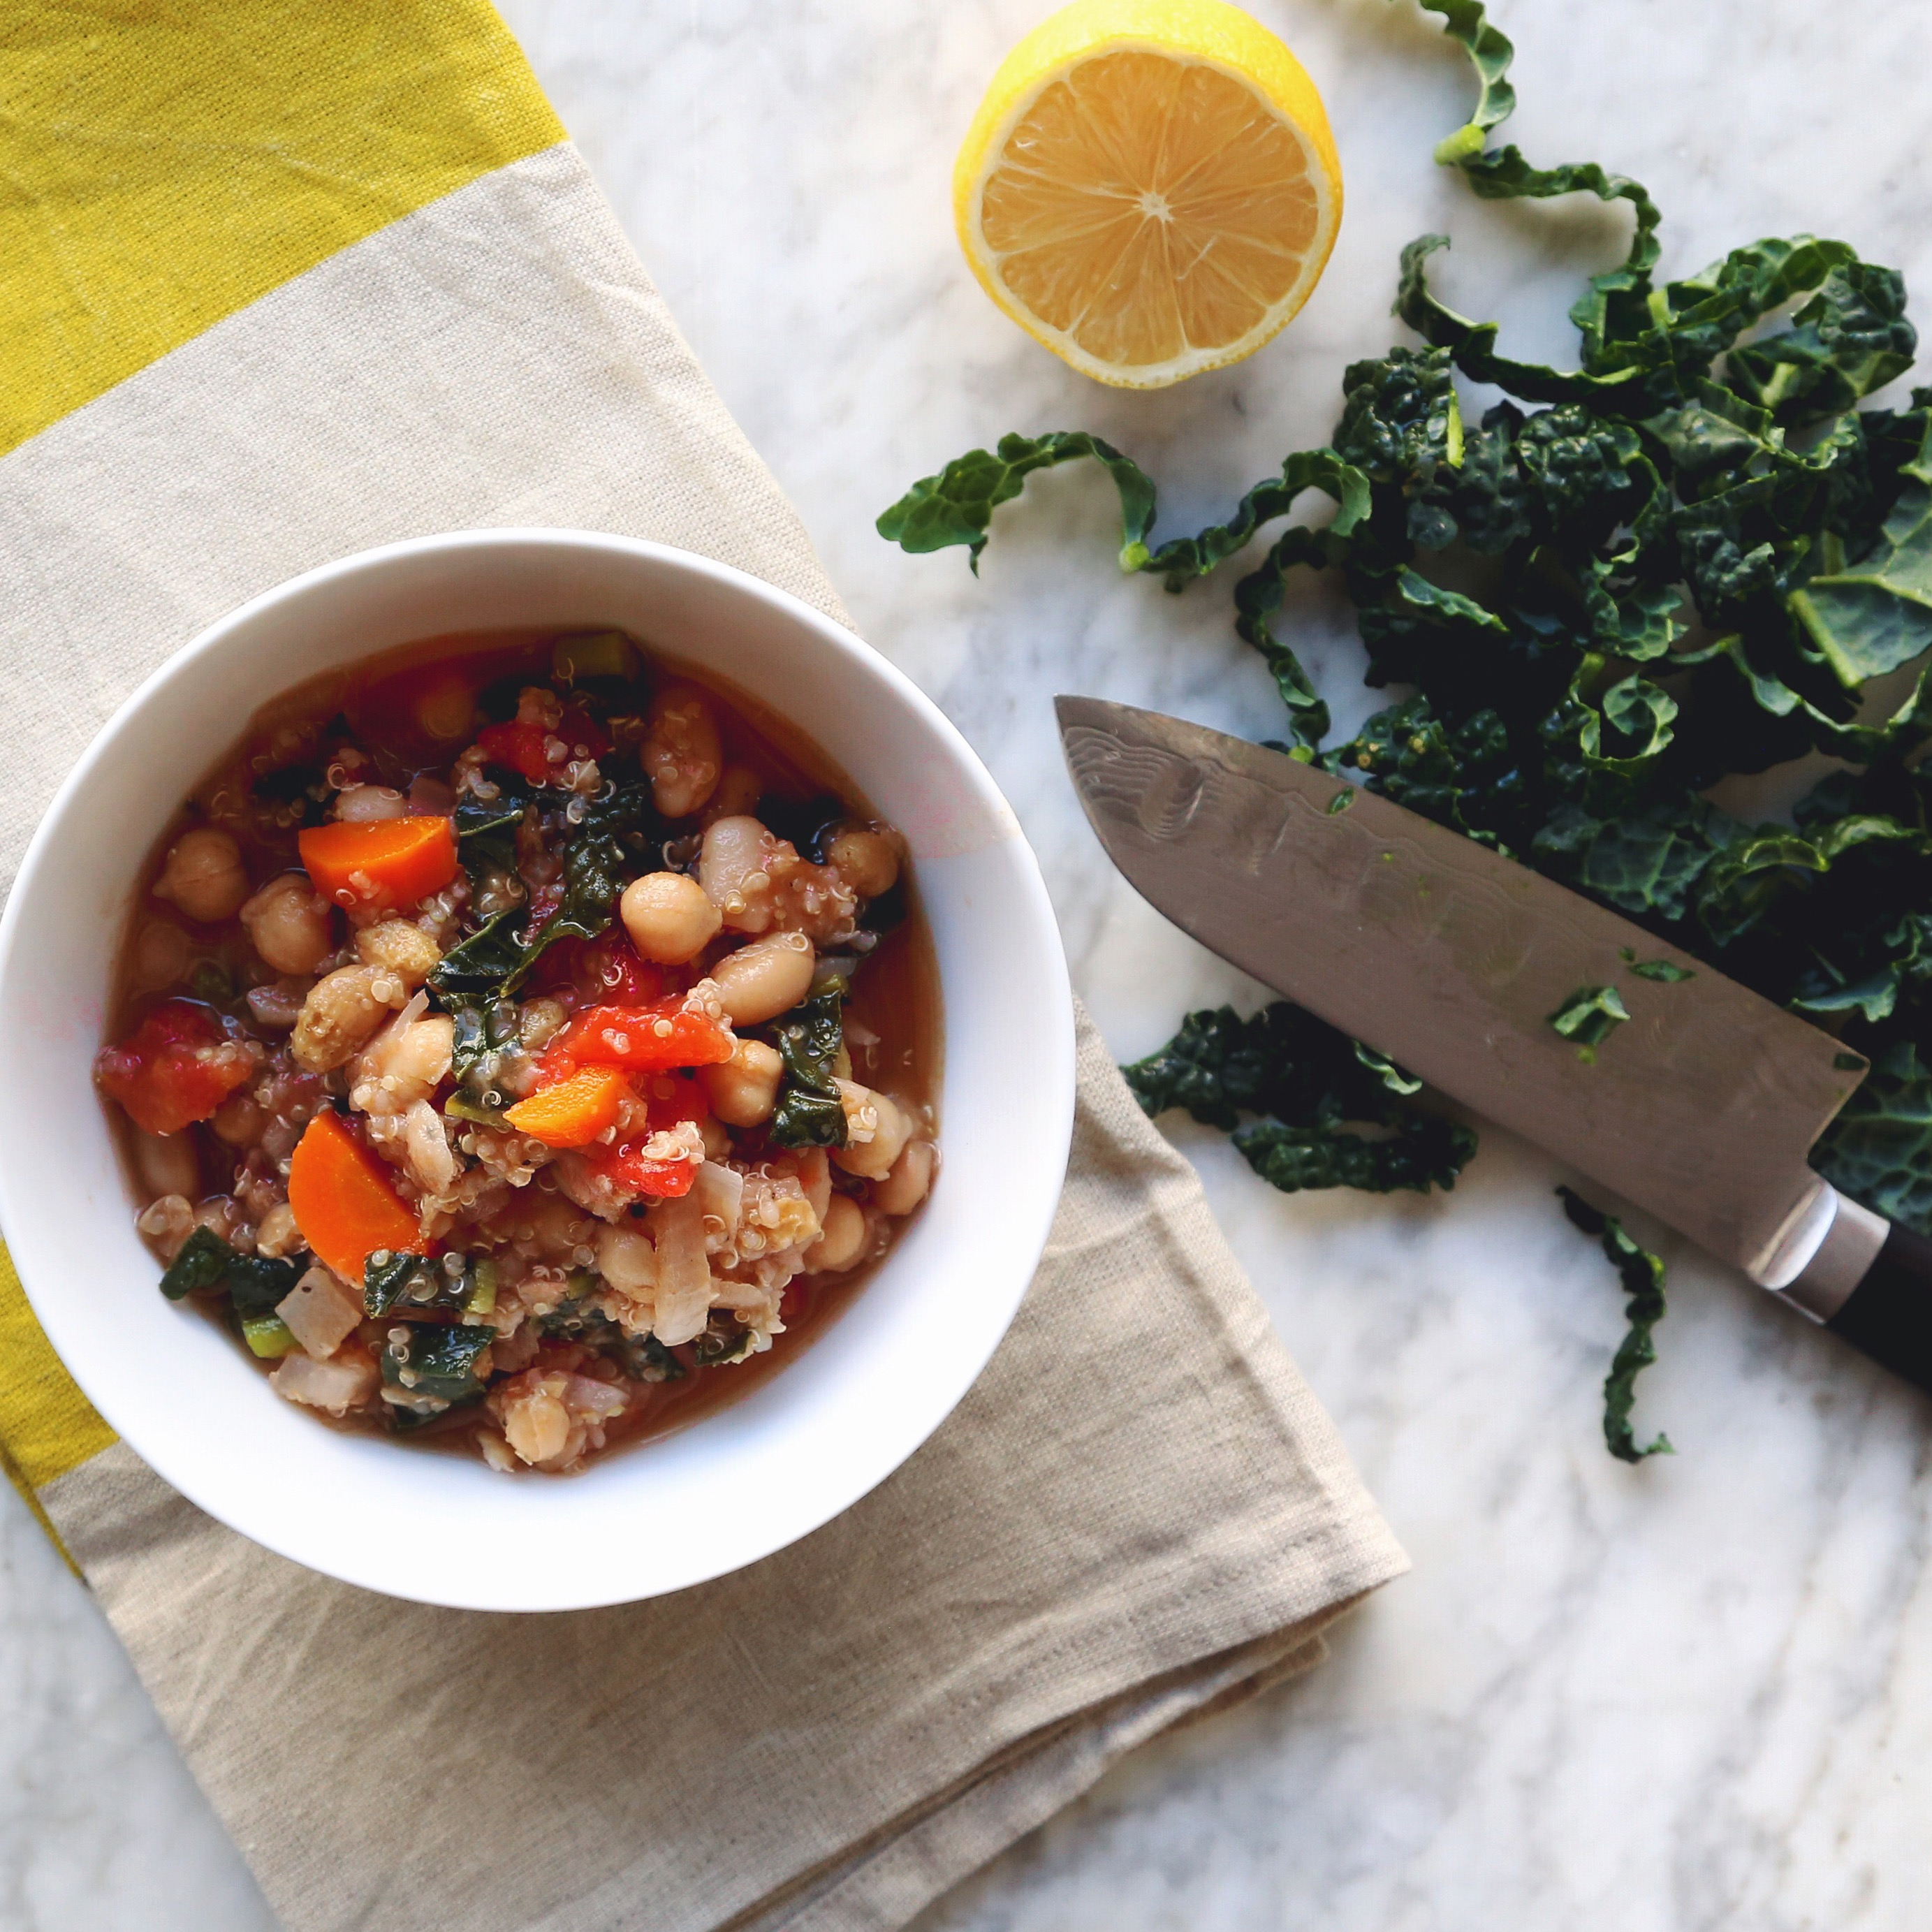 plant based + vegan Chickpea, Tomato and Quinoa Stew with Cinnamon and Golden Raisins recipe // inmybowl.com